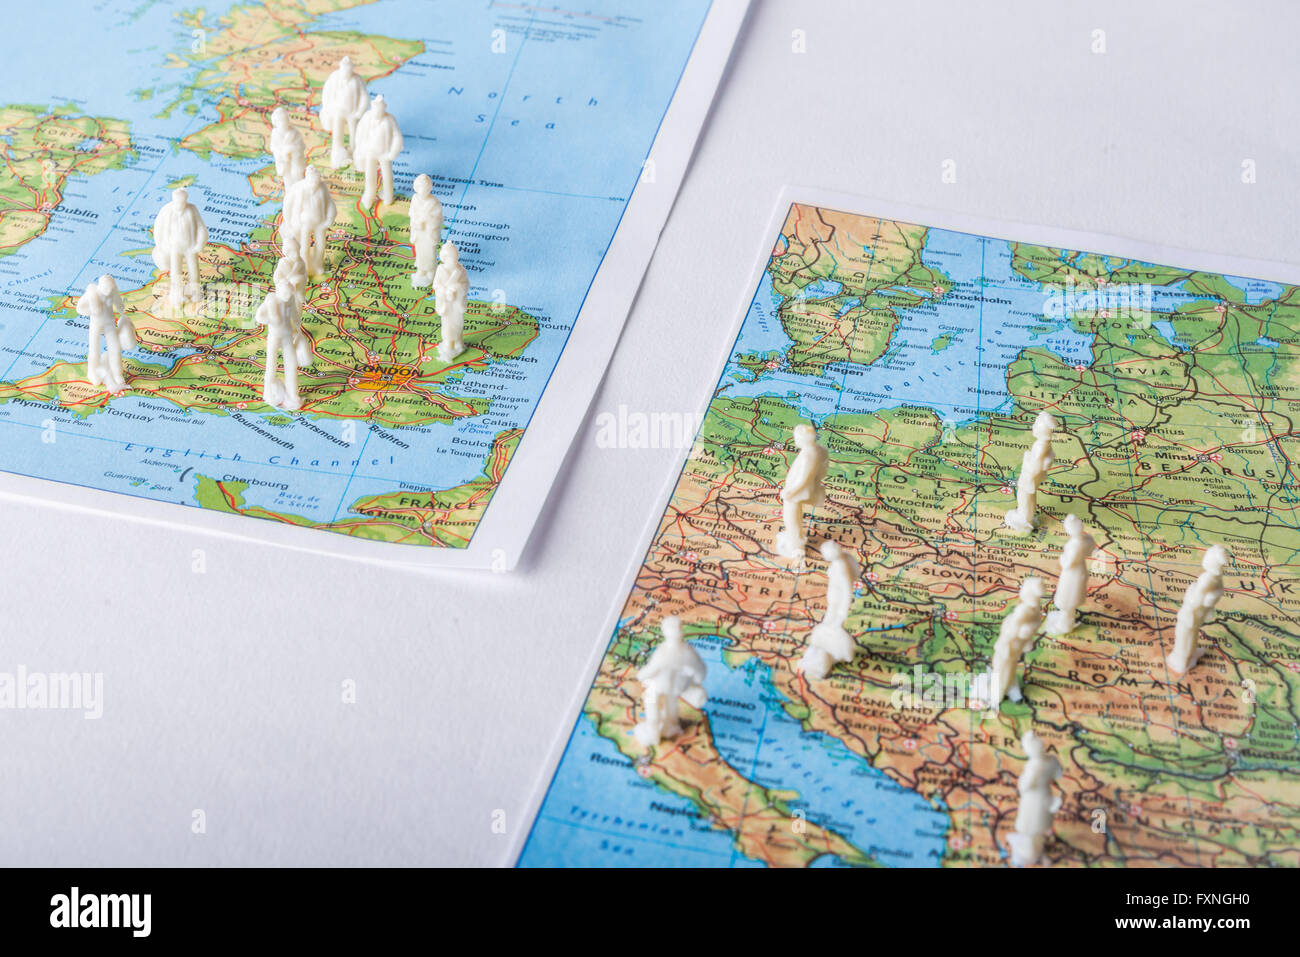 Figures of people standing on maps of UK and Europe, symbolizing making decision about Brexit - Stock Image